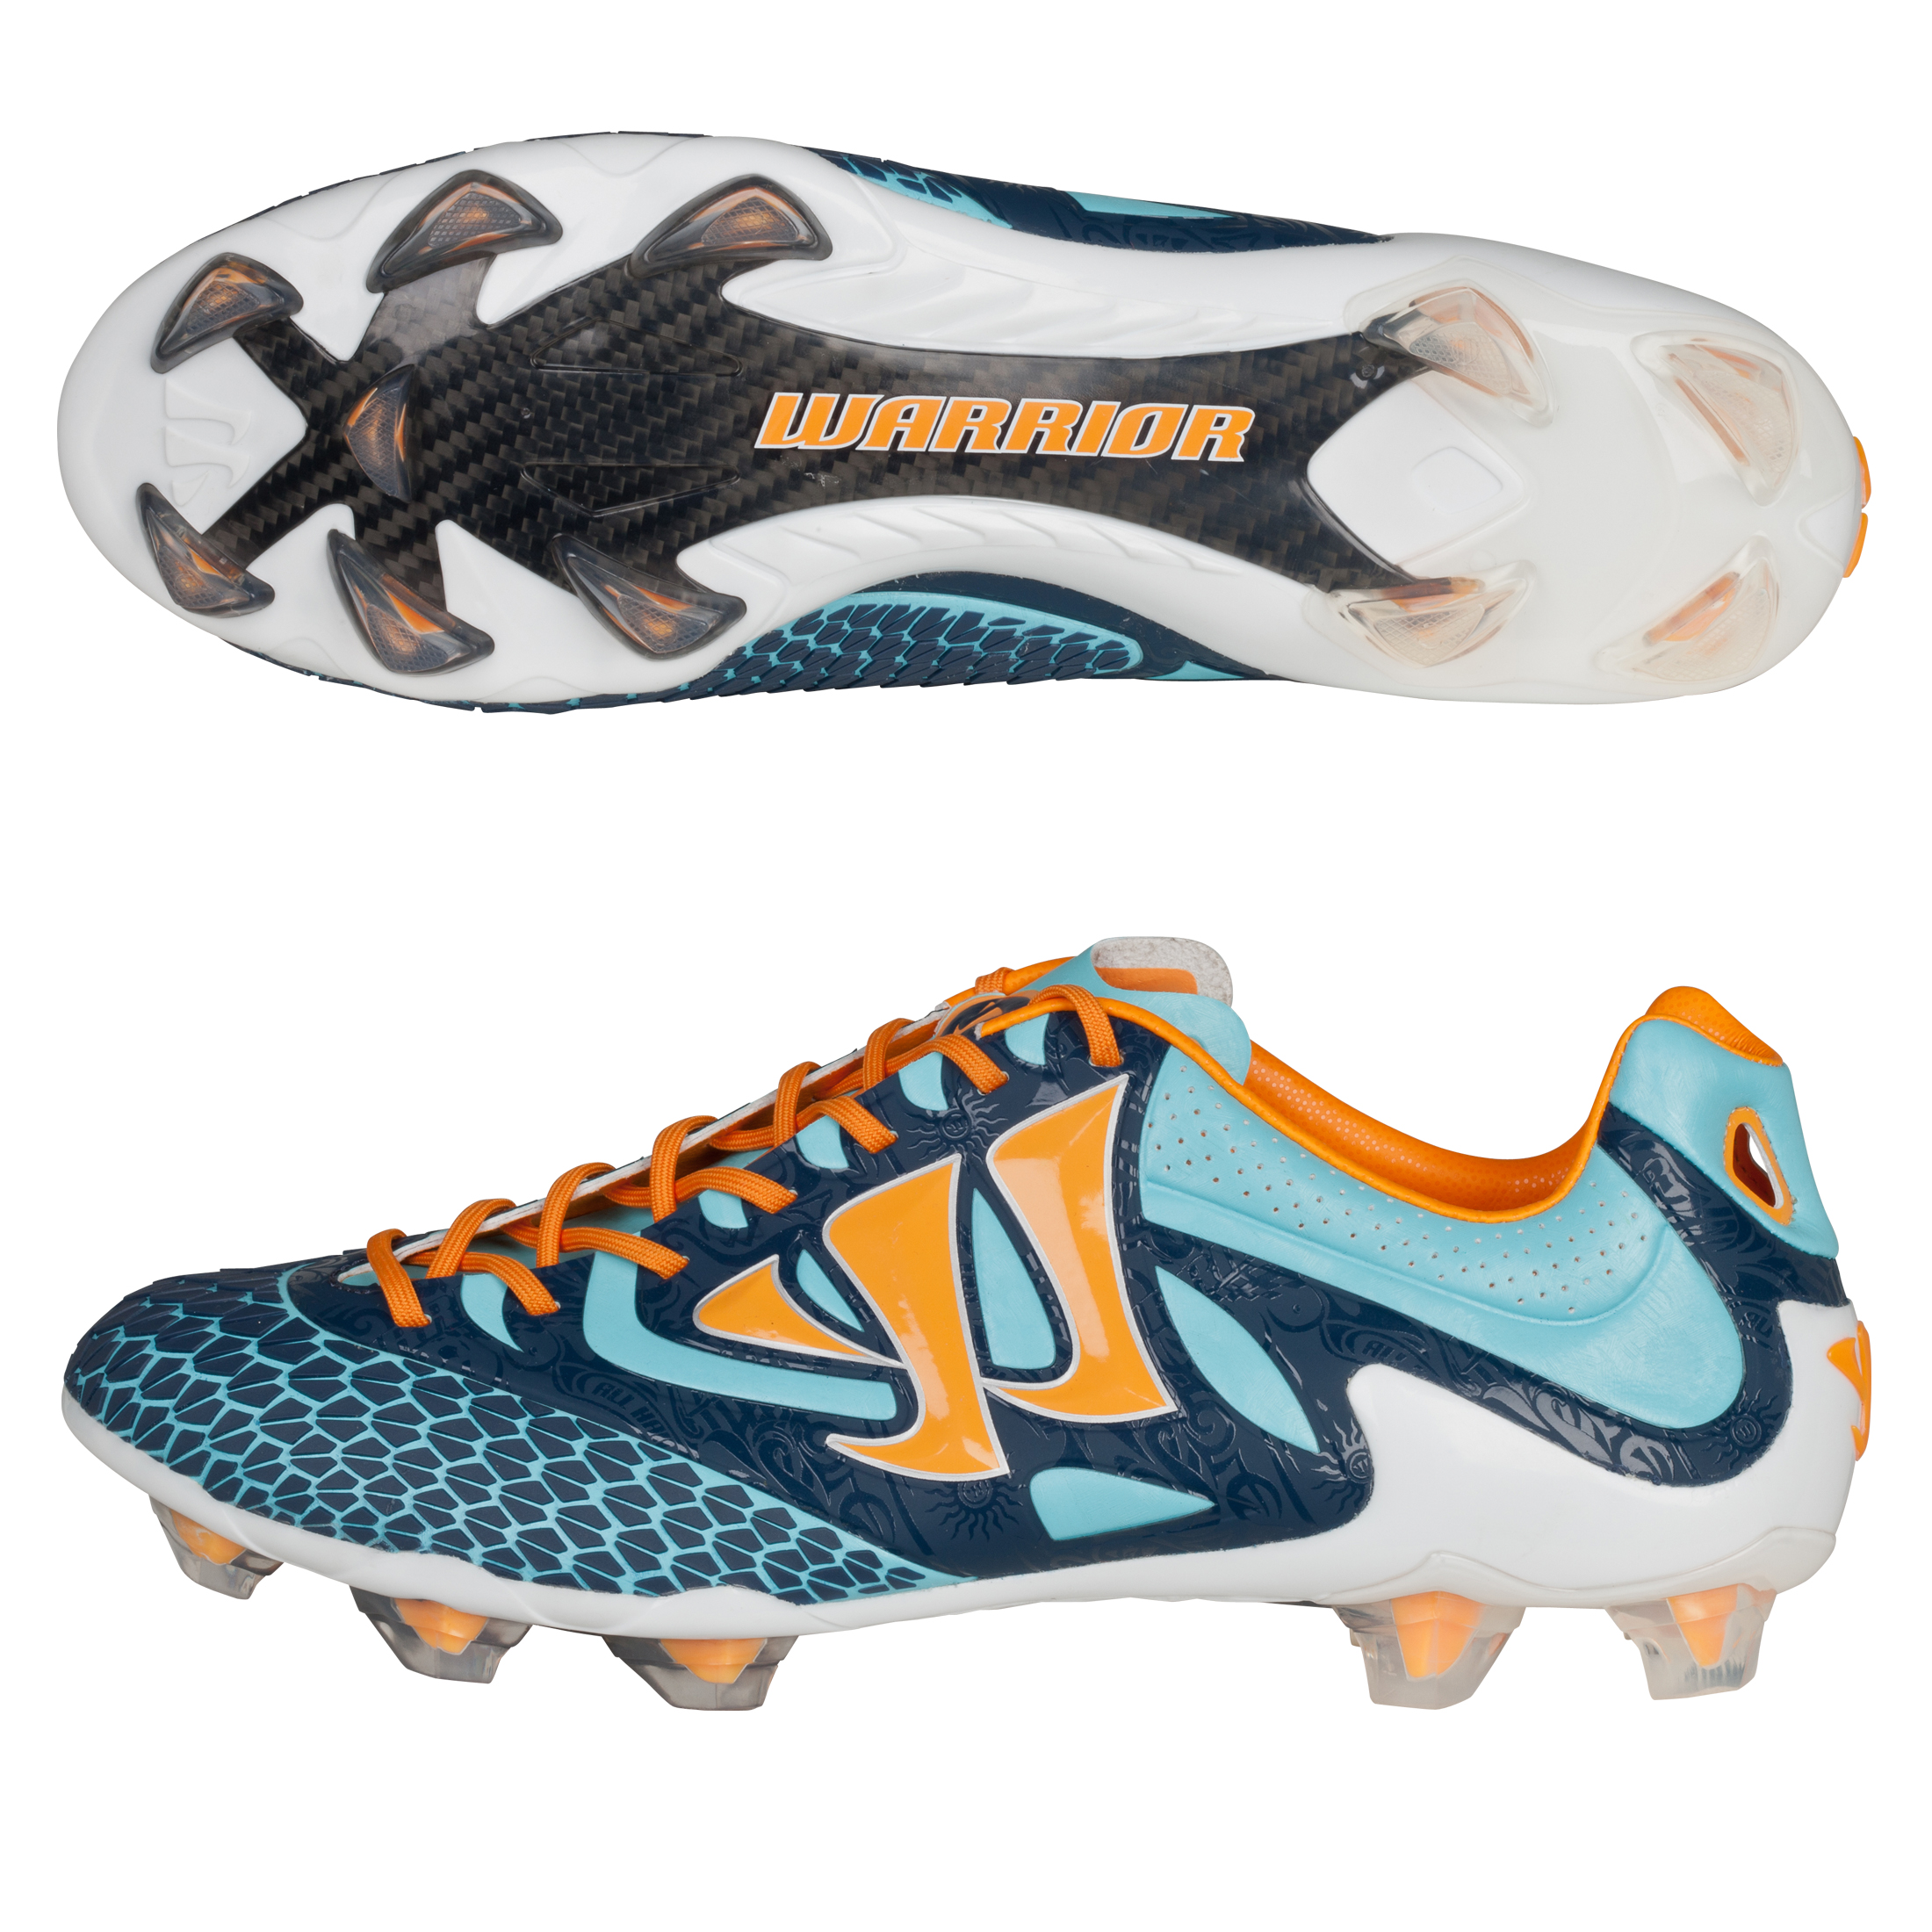 Warrior Sports Skreamer S-Lite Firm Ground Football Boots - Blue Radiance/Bright Marigold/Insignia Blue